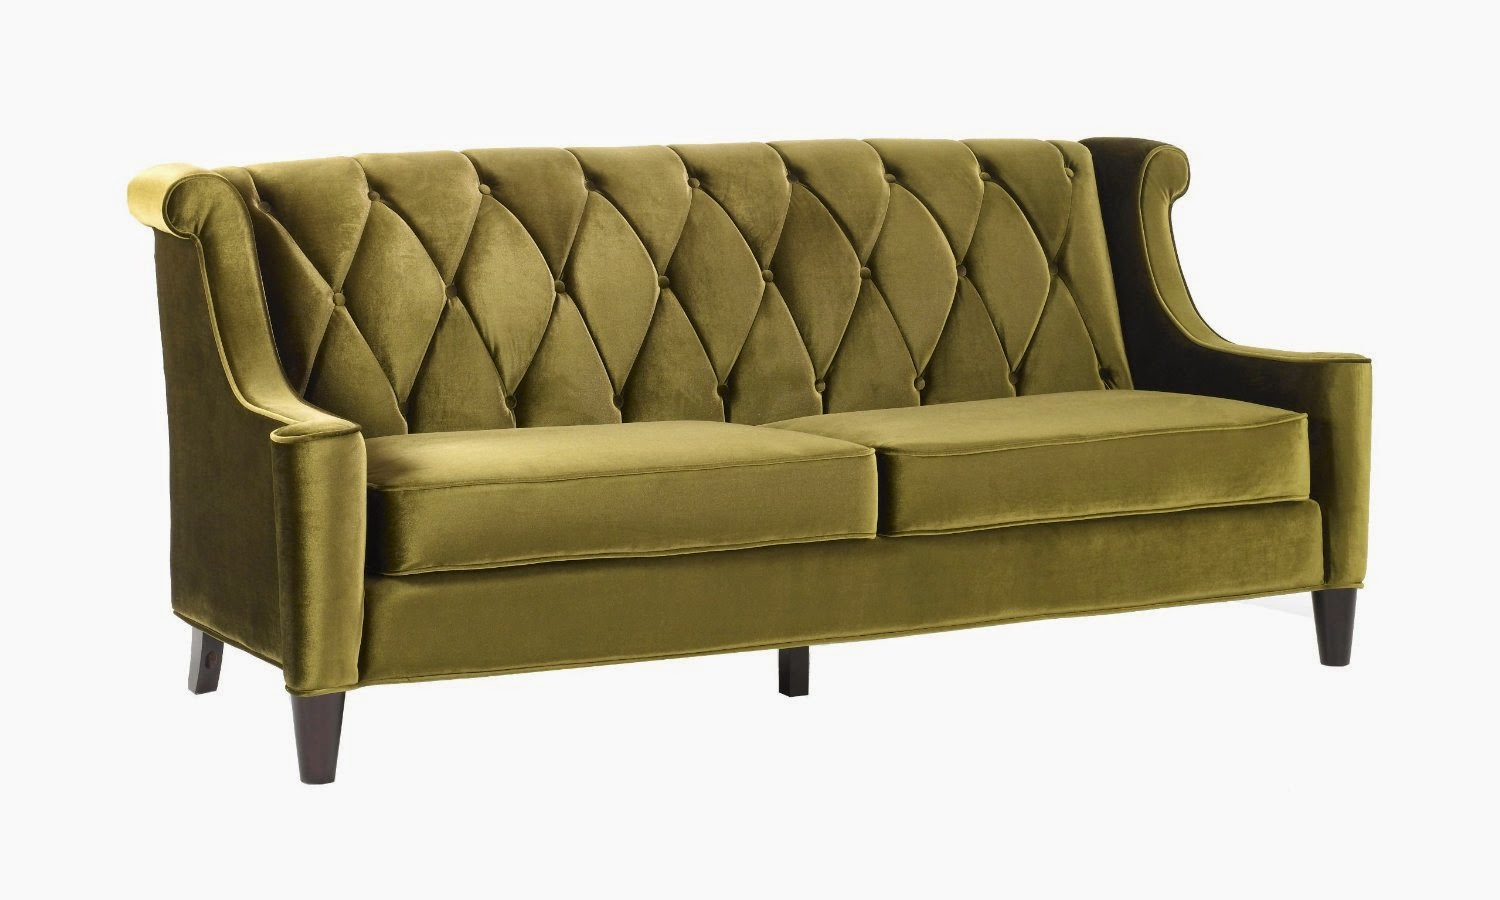 Sofa Bed Green Velvet Habitat Sleigh Couch